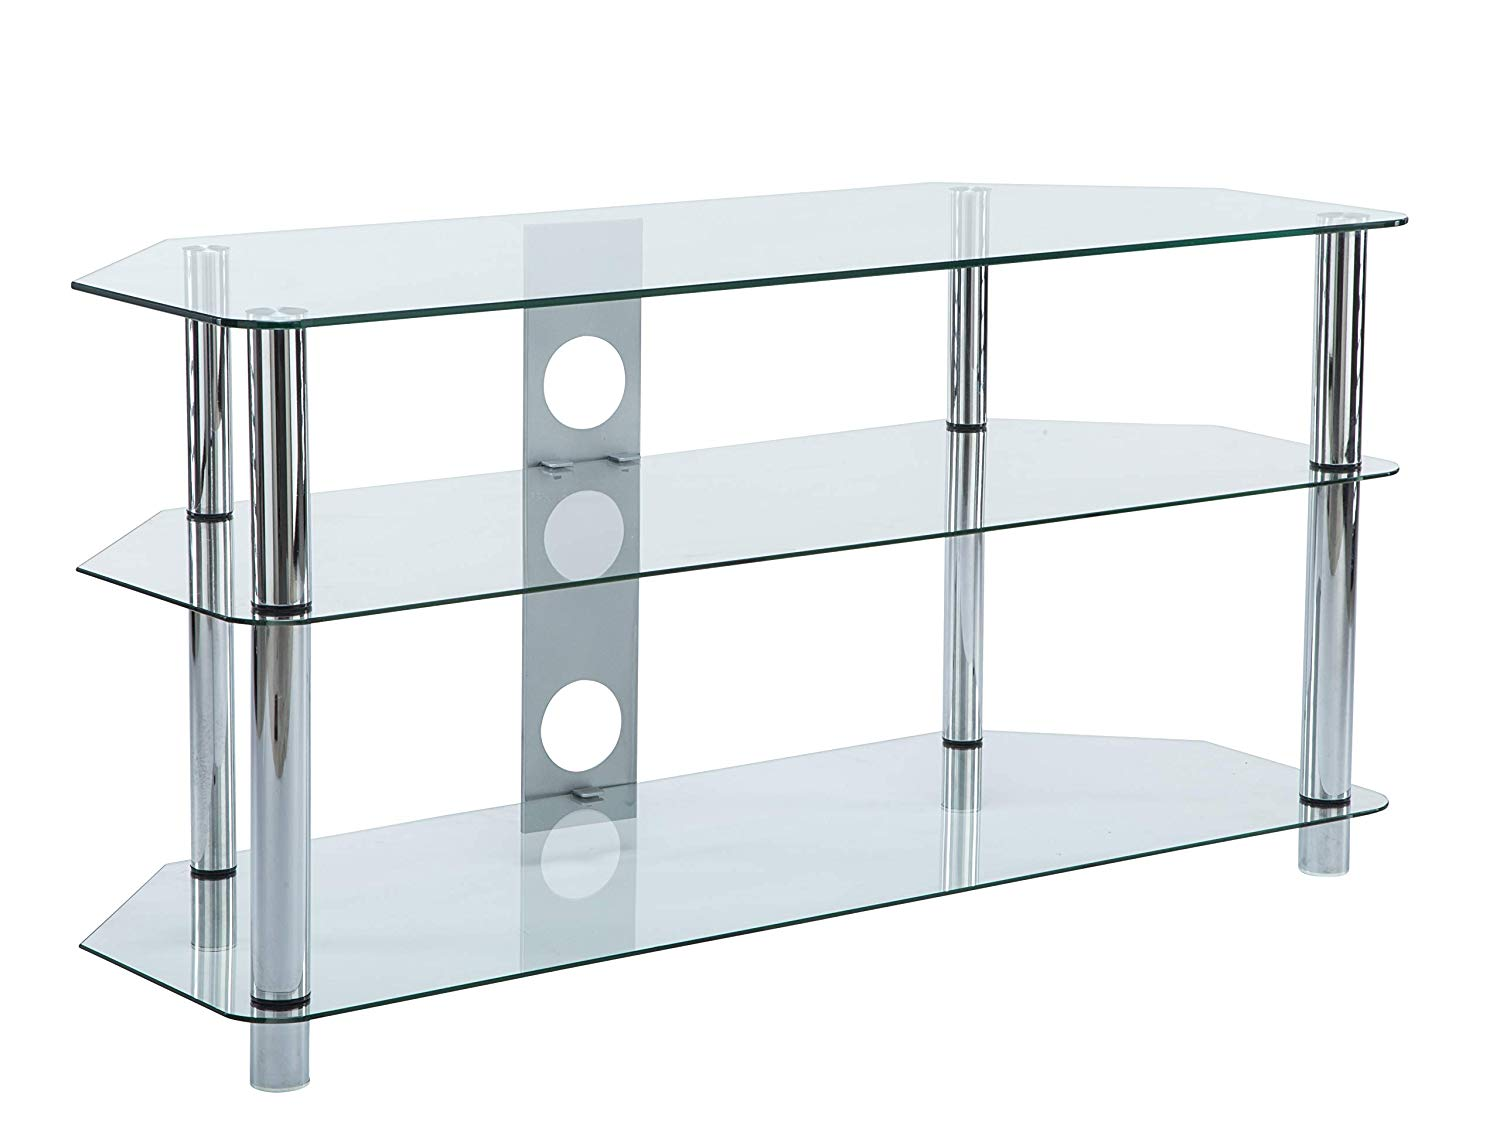 e154761cc7d2 Get Quotations · MMT Furniture Designs Clear Glass Floor TV Stand Universal  48